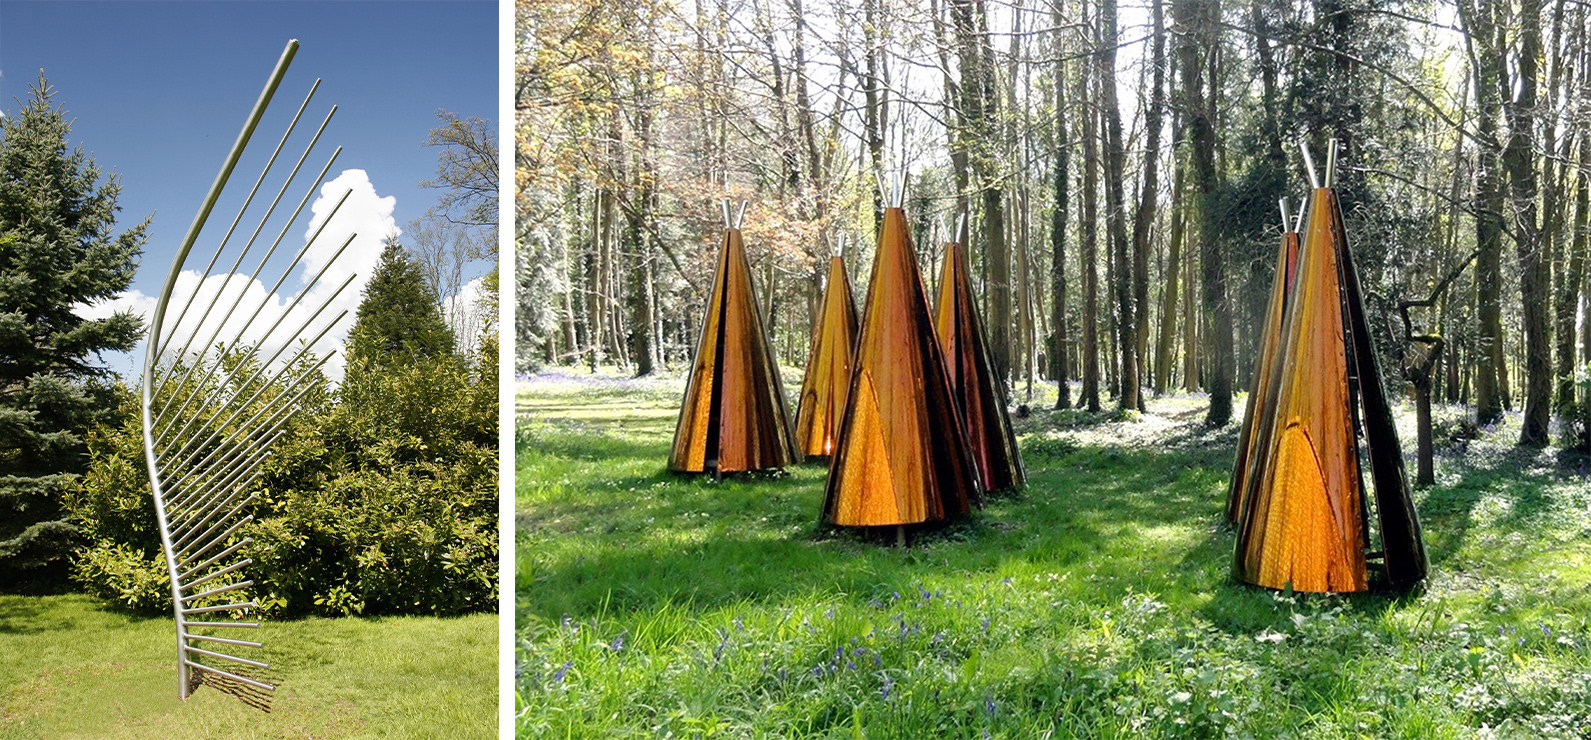 Left: Mountains sculpture, steel mirrored pointy shapes in the shape of a mountain. Right: copper coloured cones